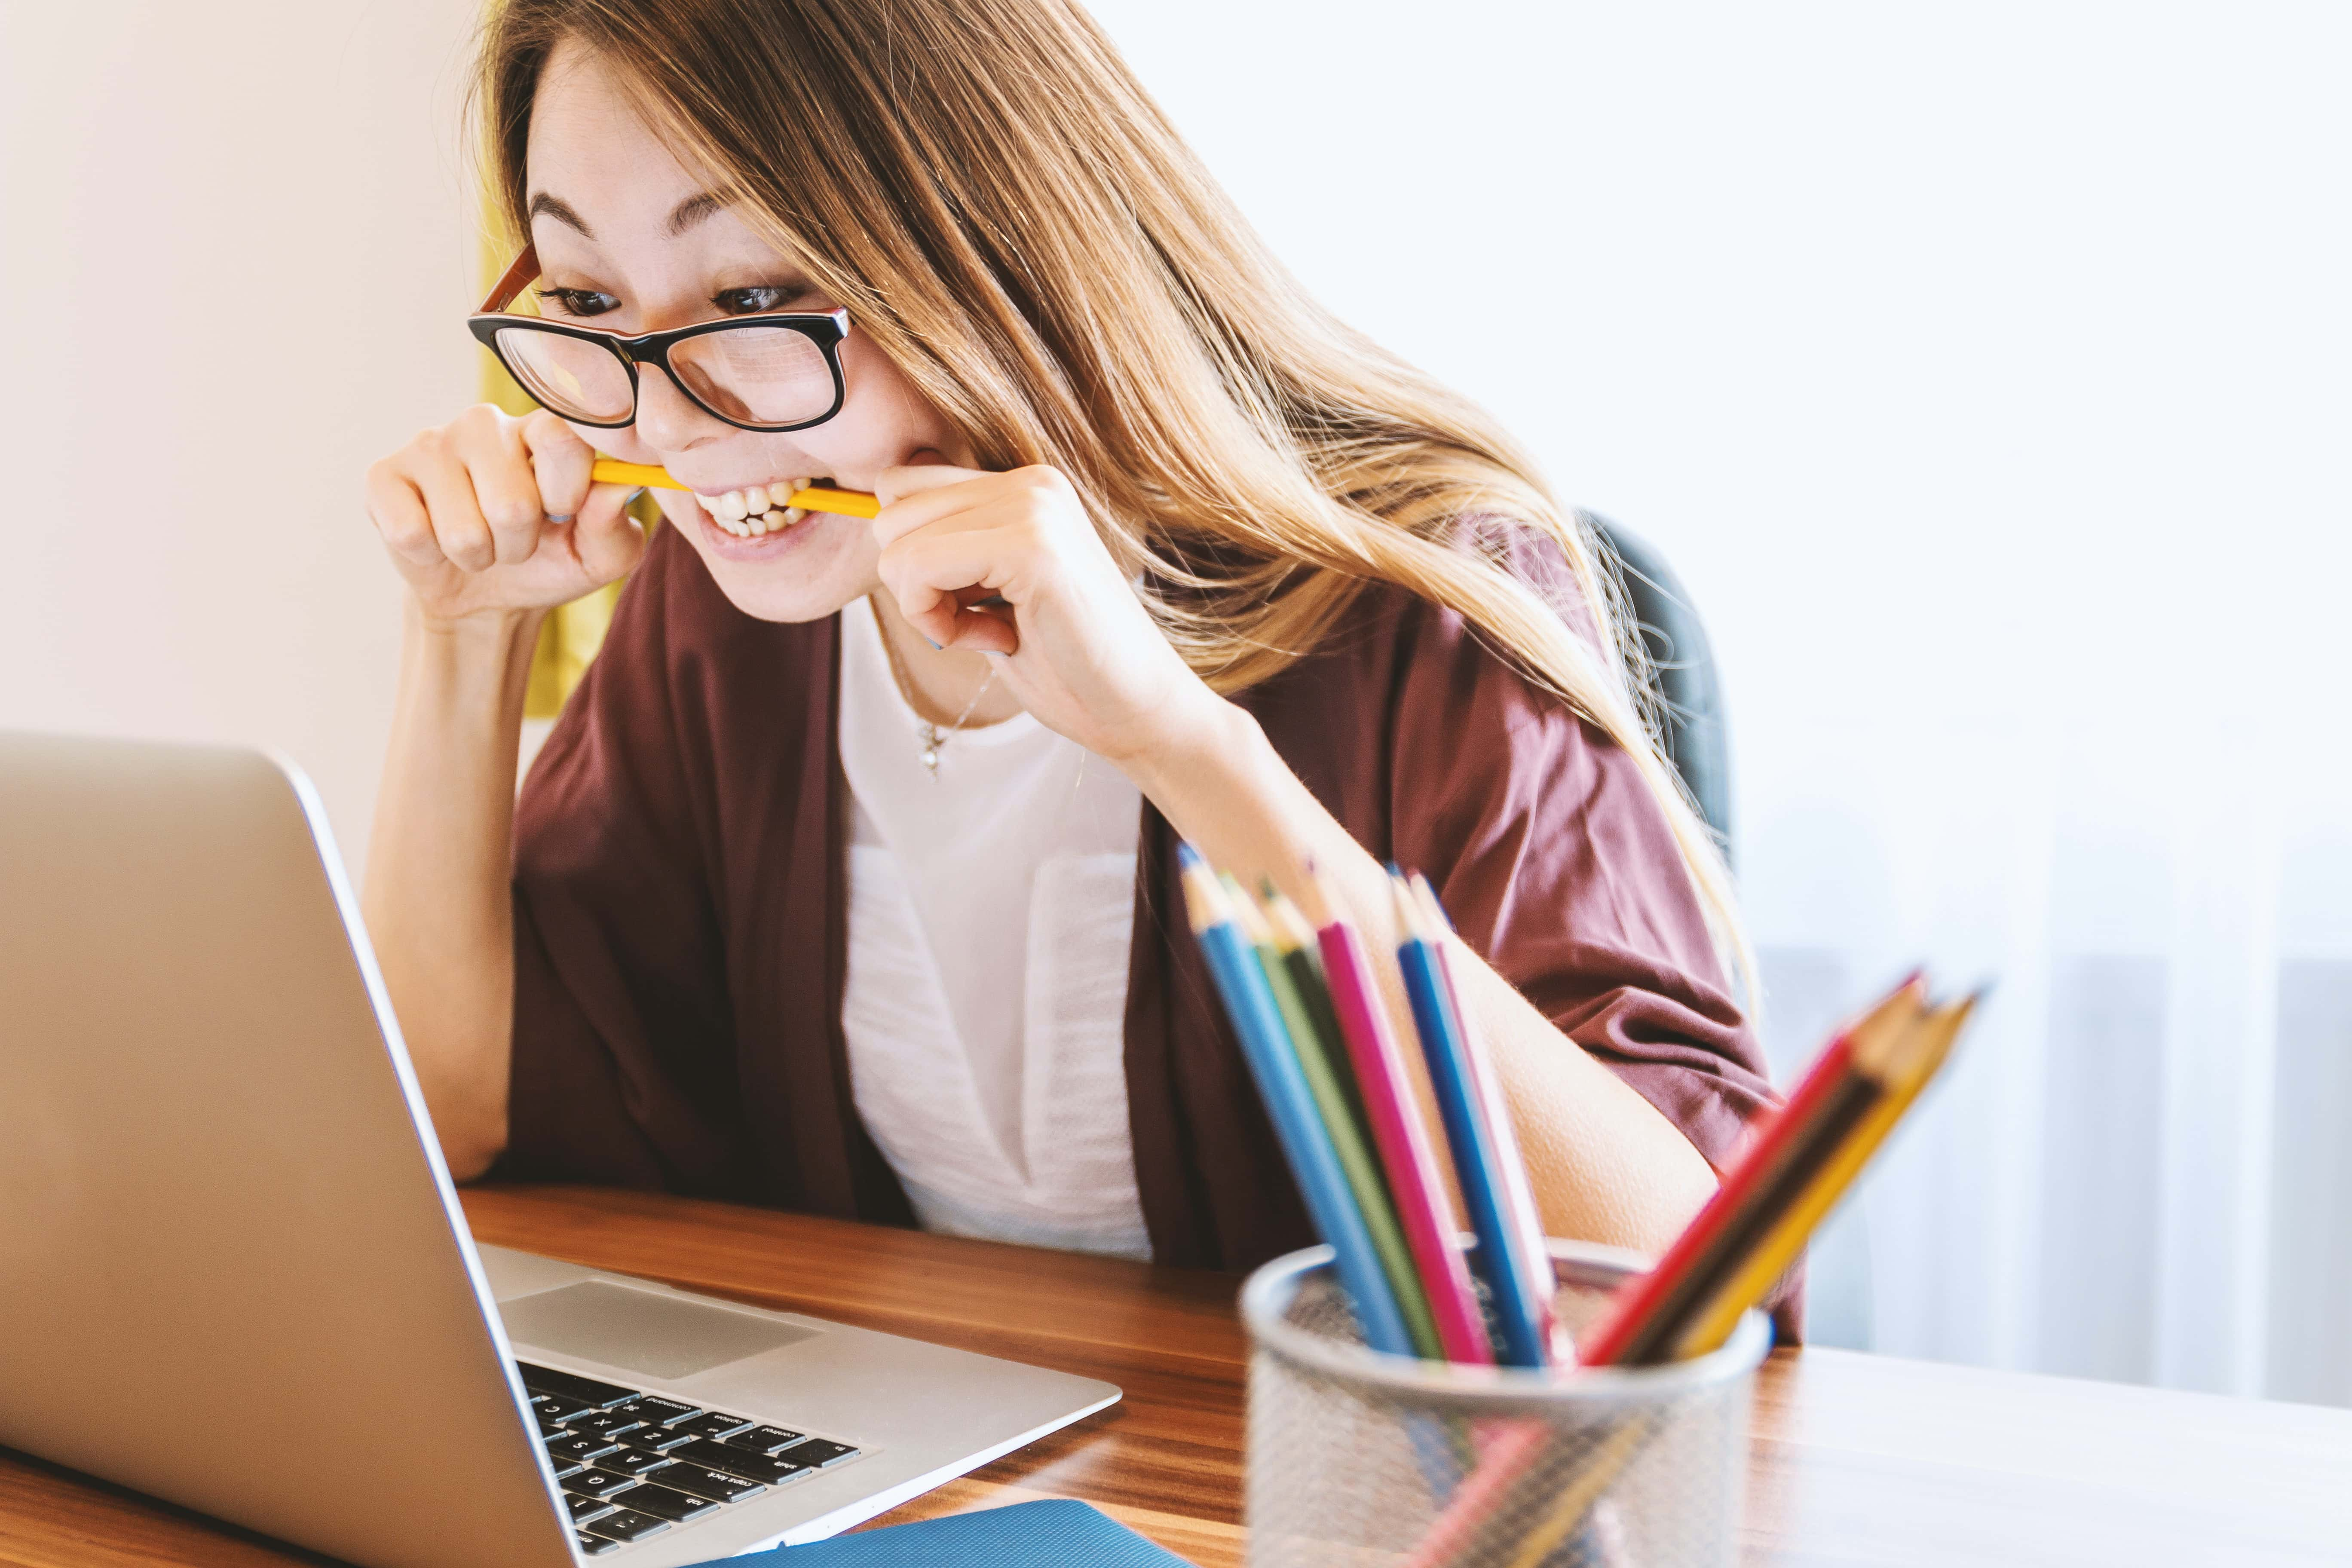 The GRE is long and stressful, but you can beat it with smart strategies